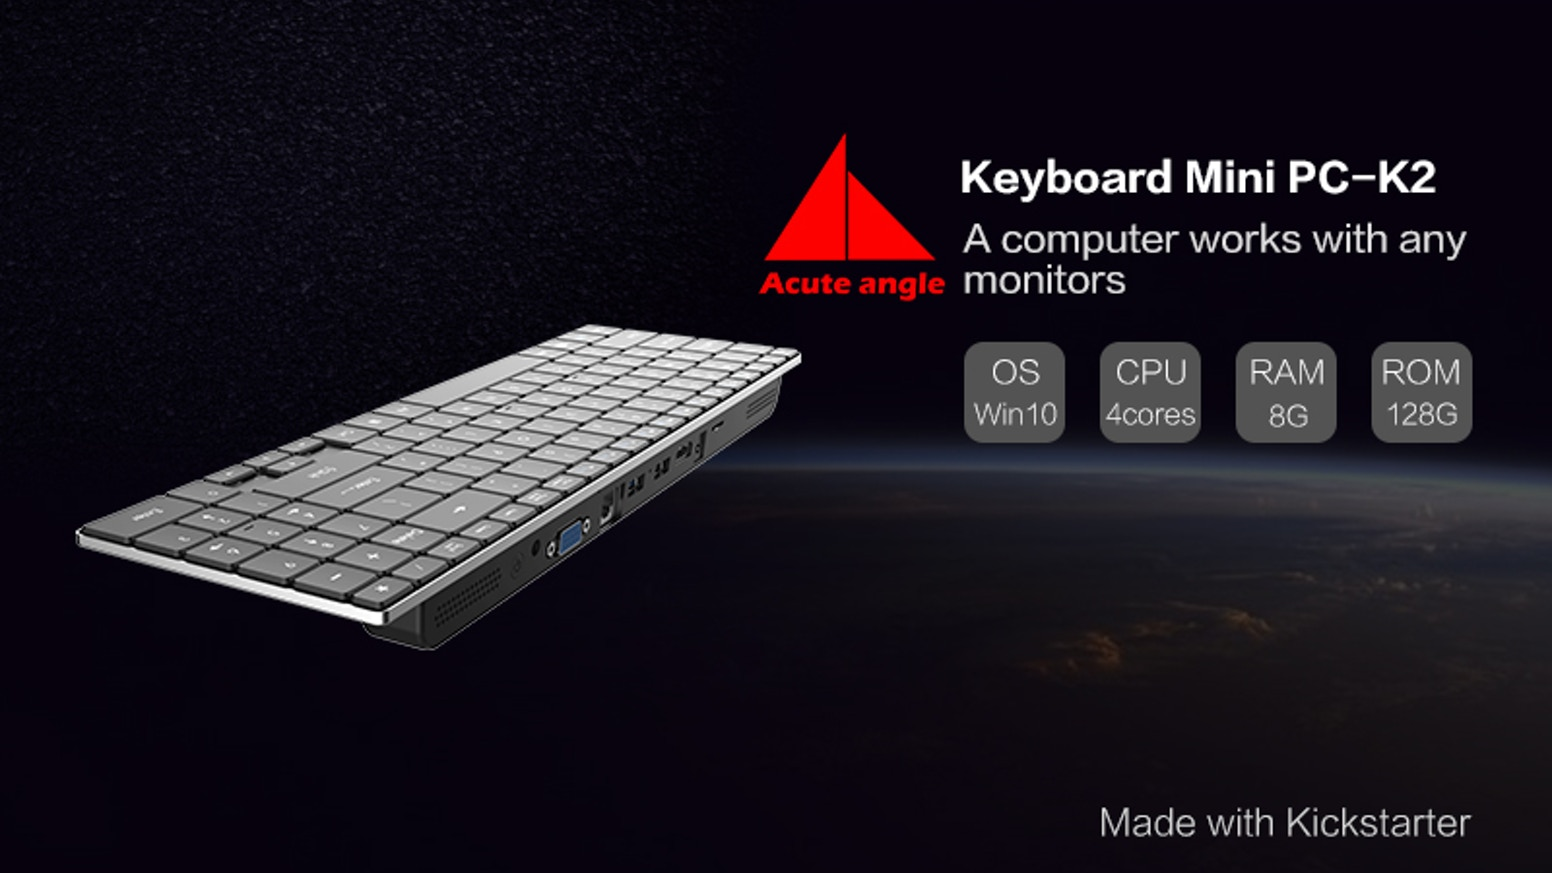 A whole new PC experience:The world's first all-in-one keyboard mini PC - K2 project.